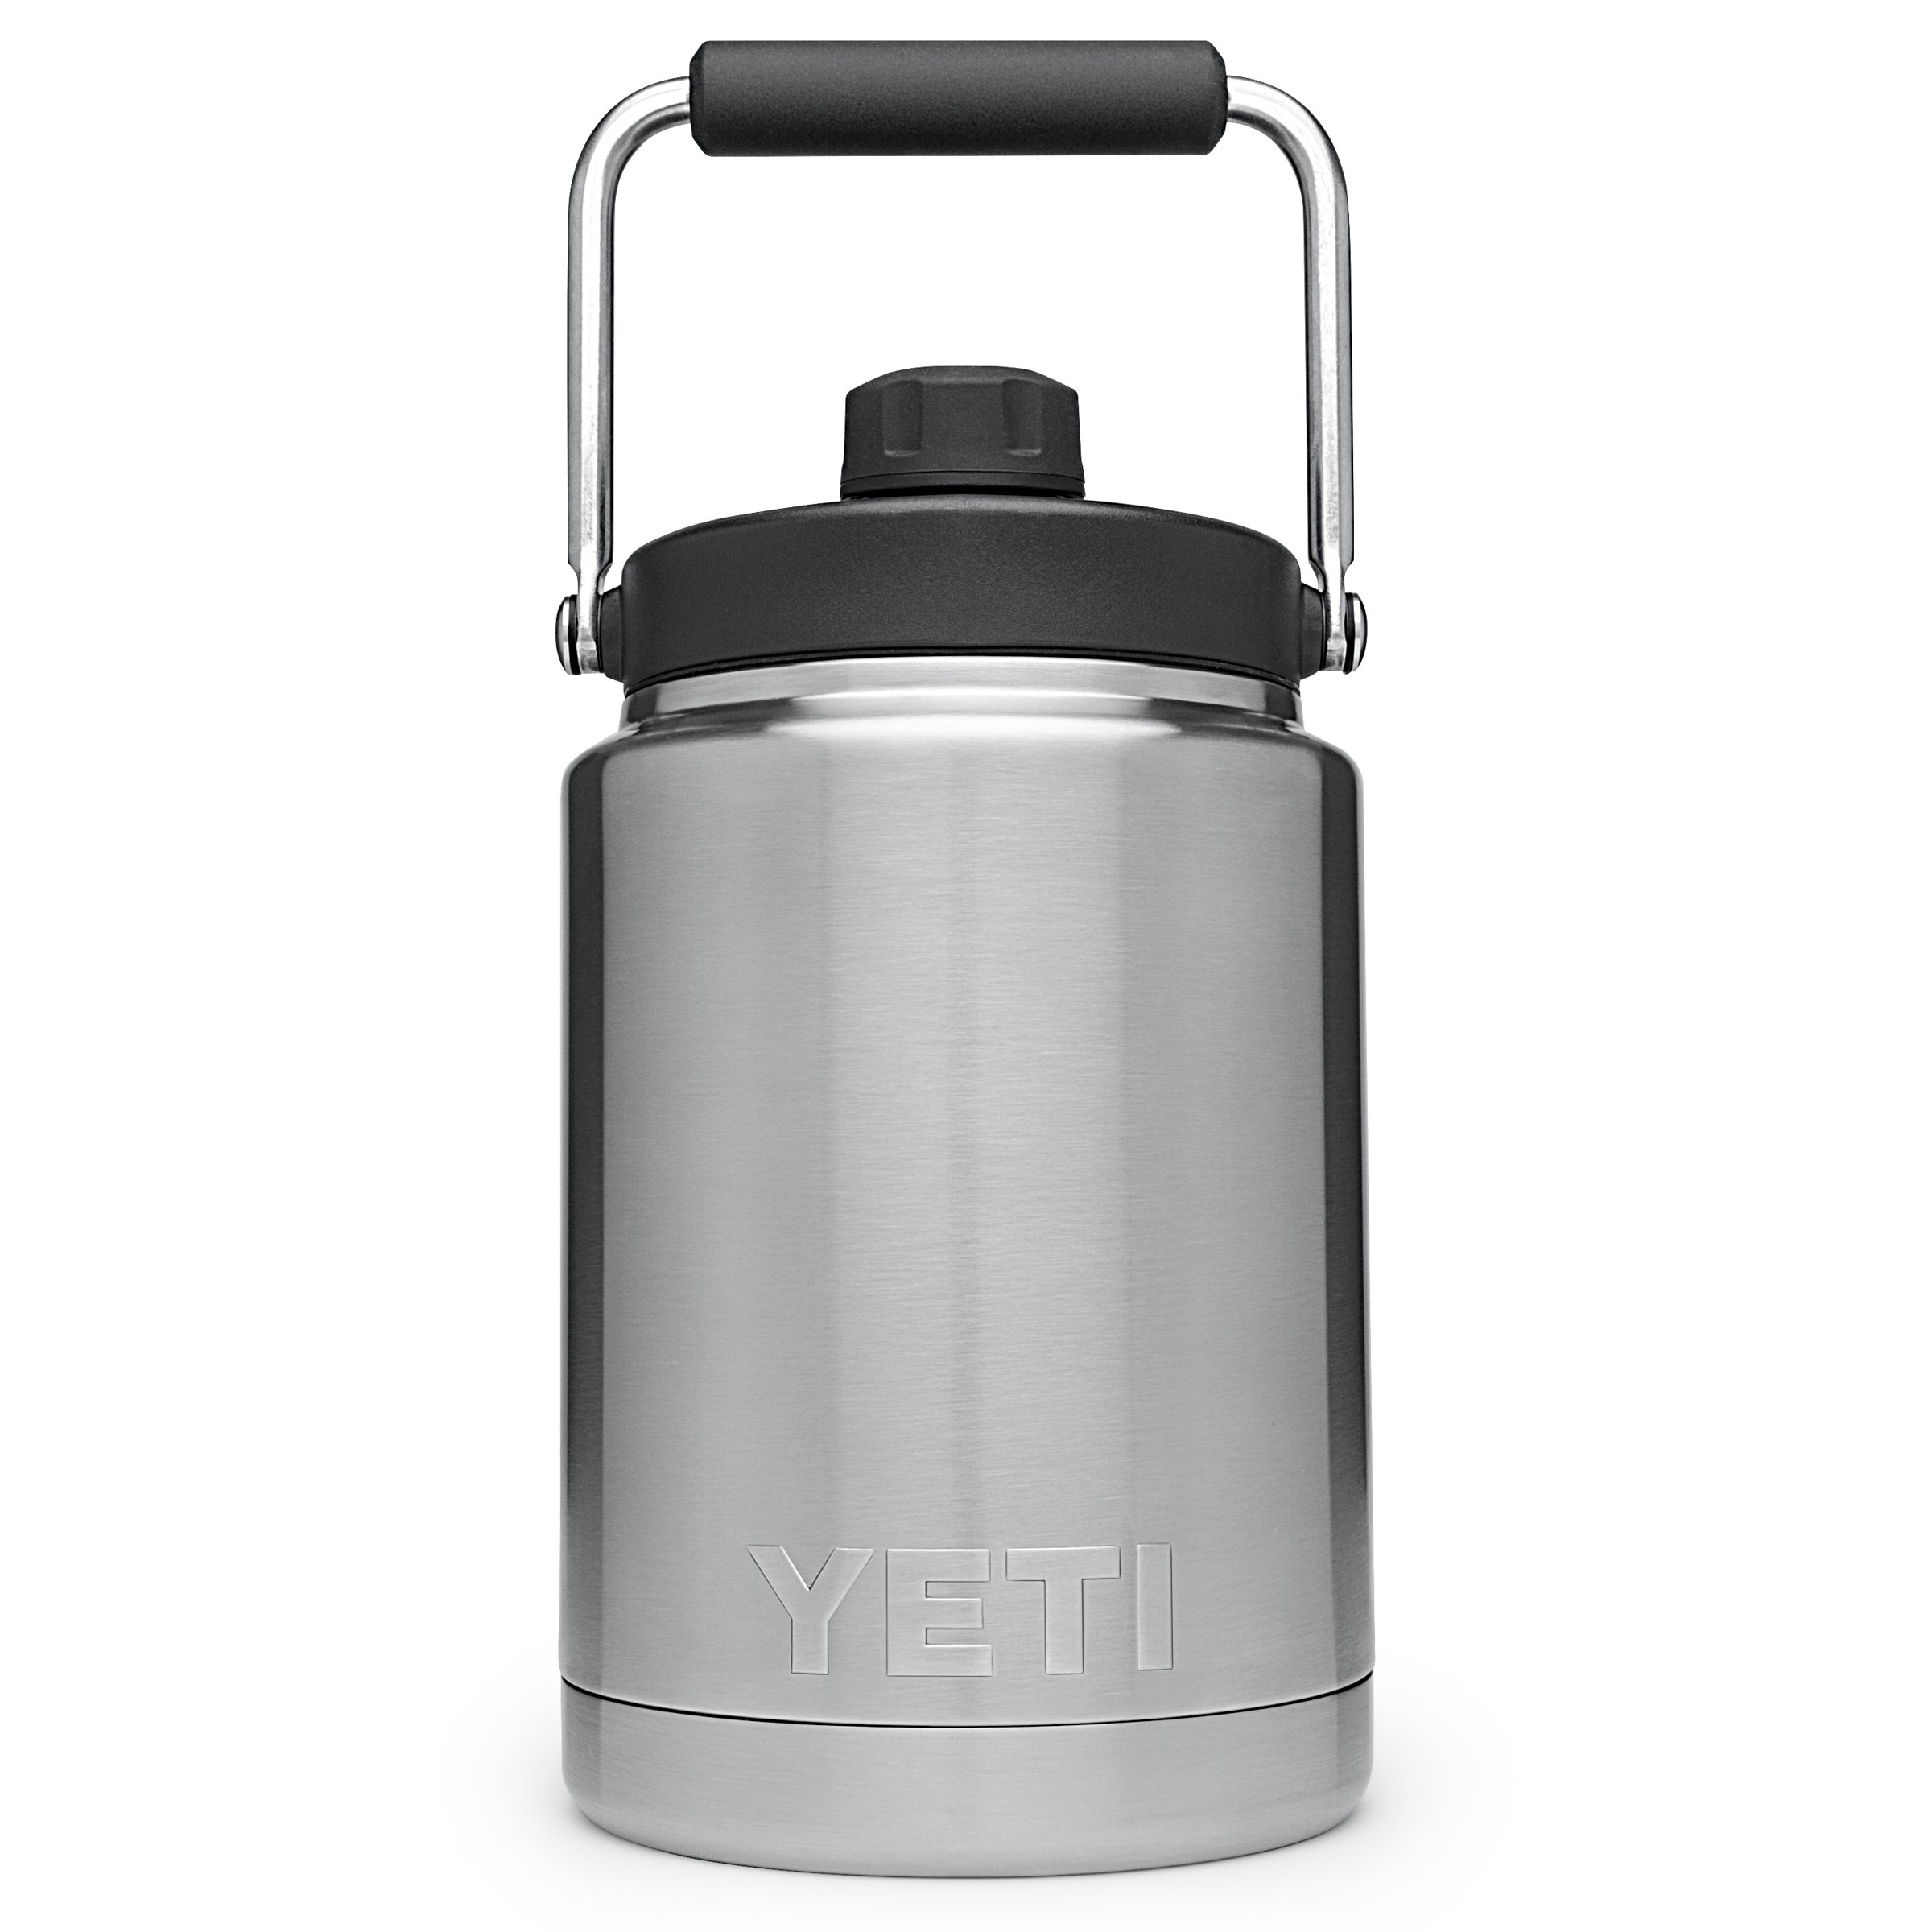 YETI Rambler Vacuum Insulated Stainless Steel Half Gallon Jug with MagCap, Stainless Steel by YETI